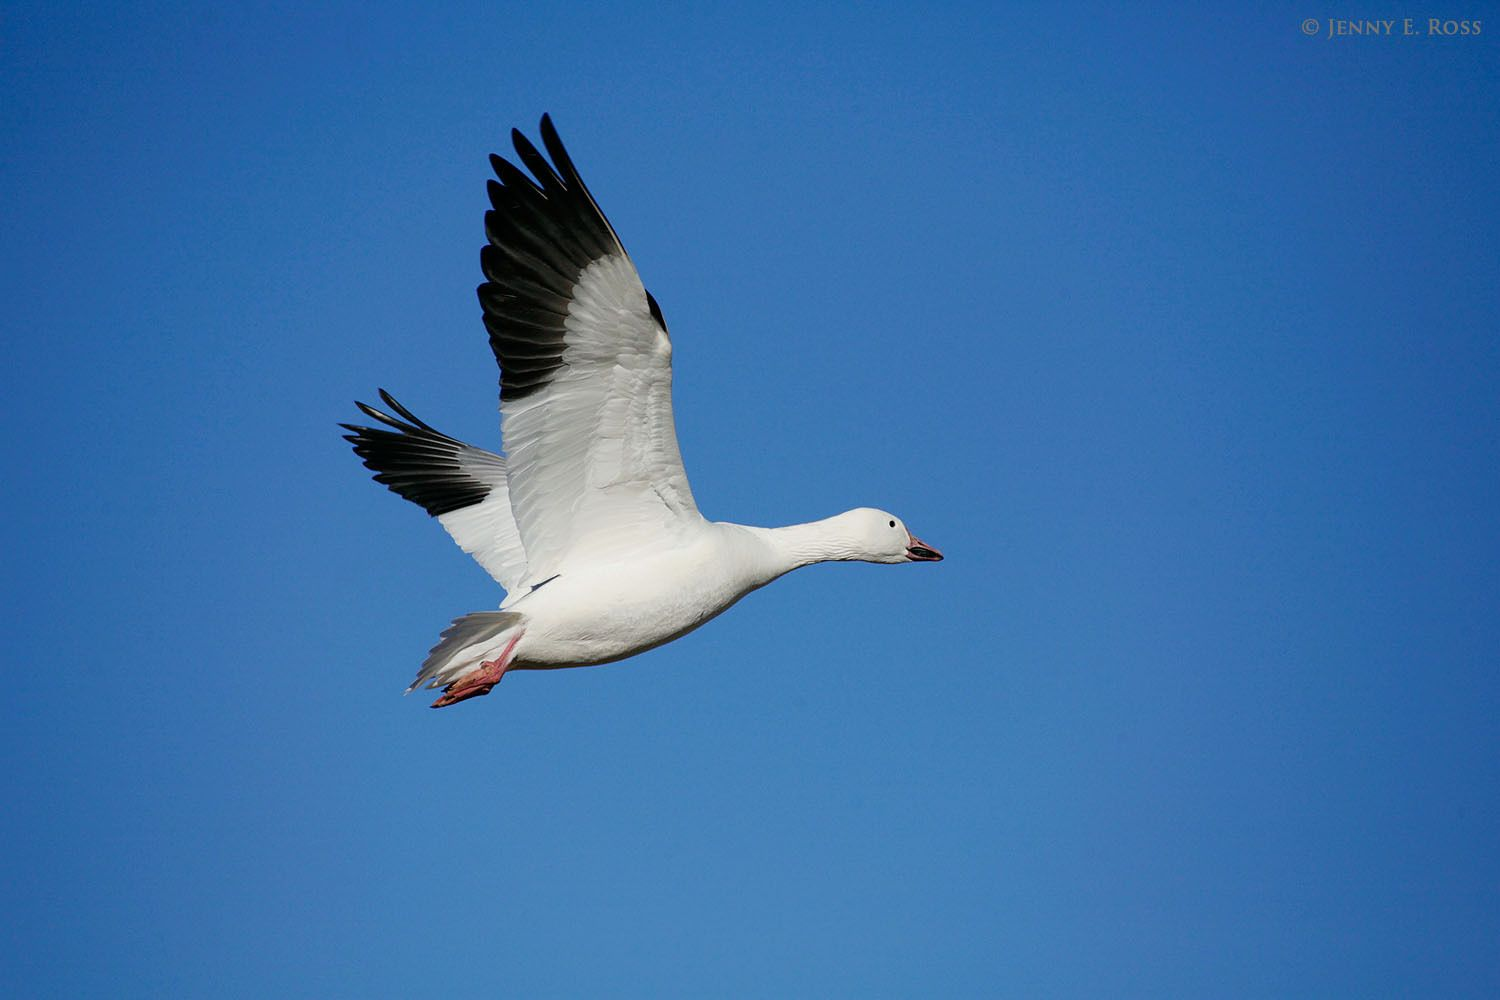 An adult snow goose (Chen caerulescens) flying over the tundra on Wrangel Island in the East Siberian Sea (Arctic Ocean), Russia.